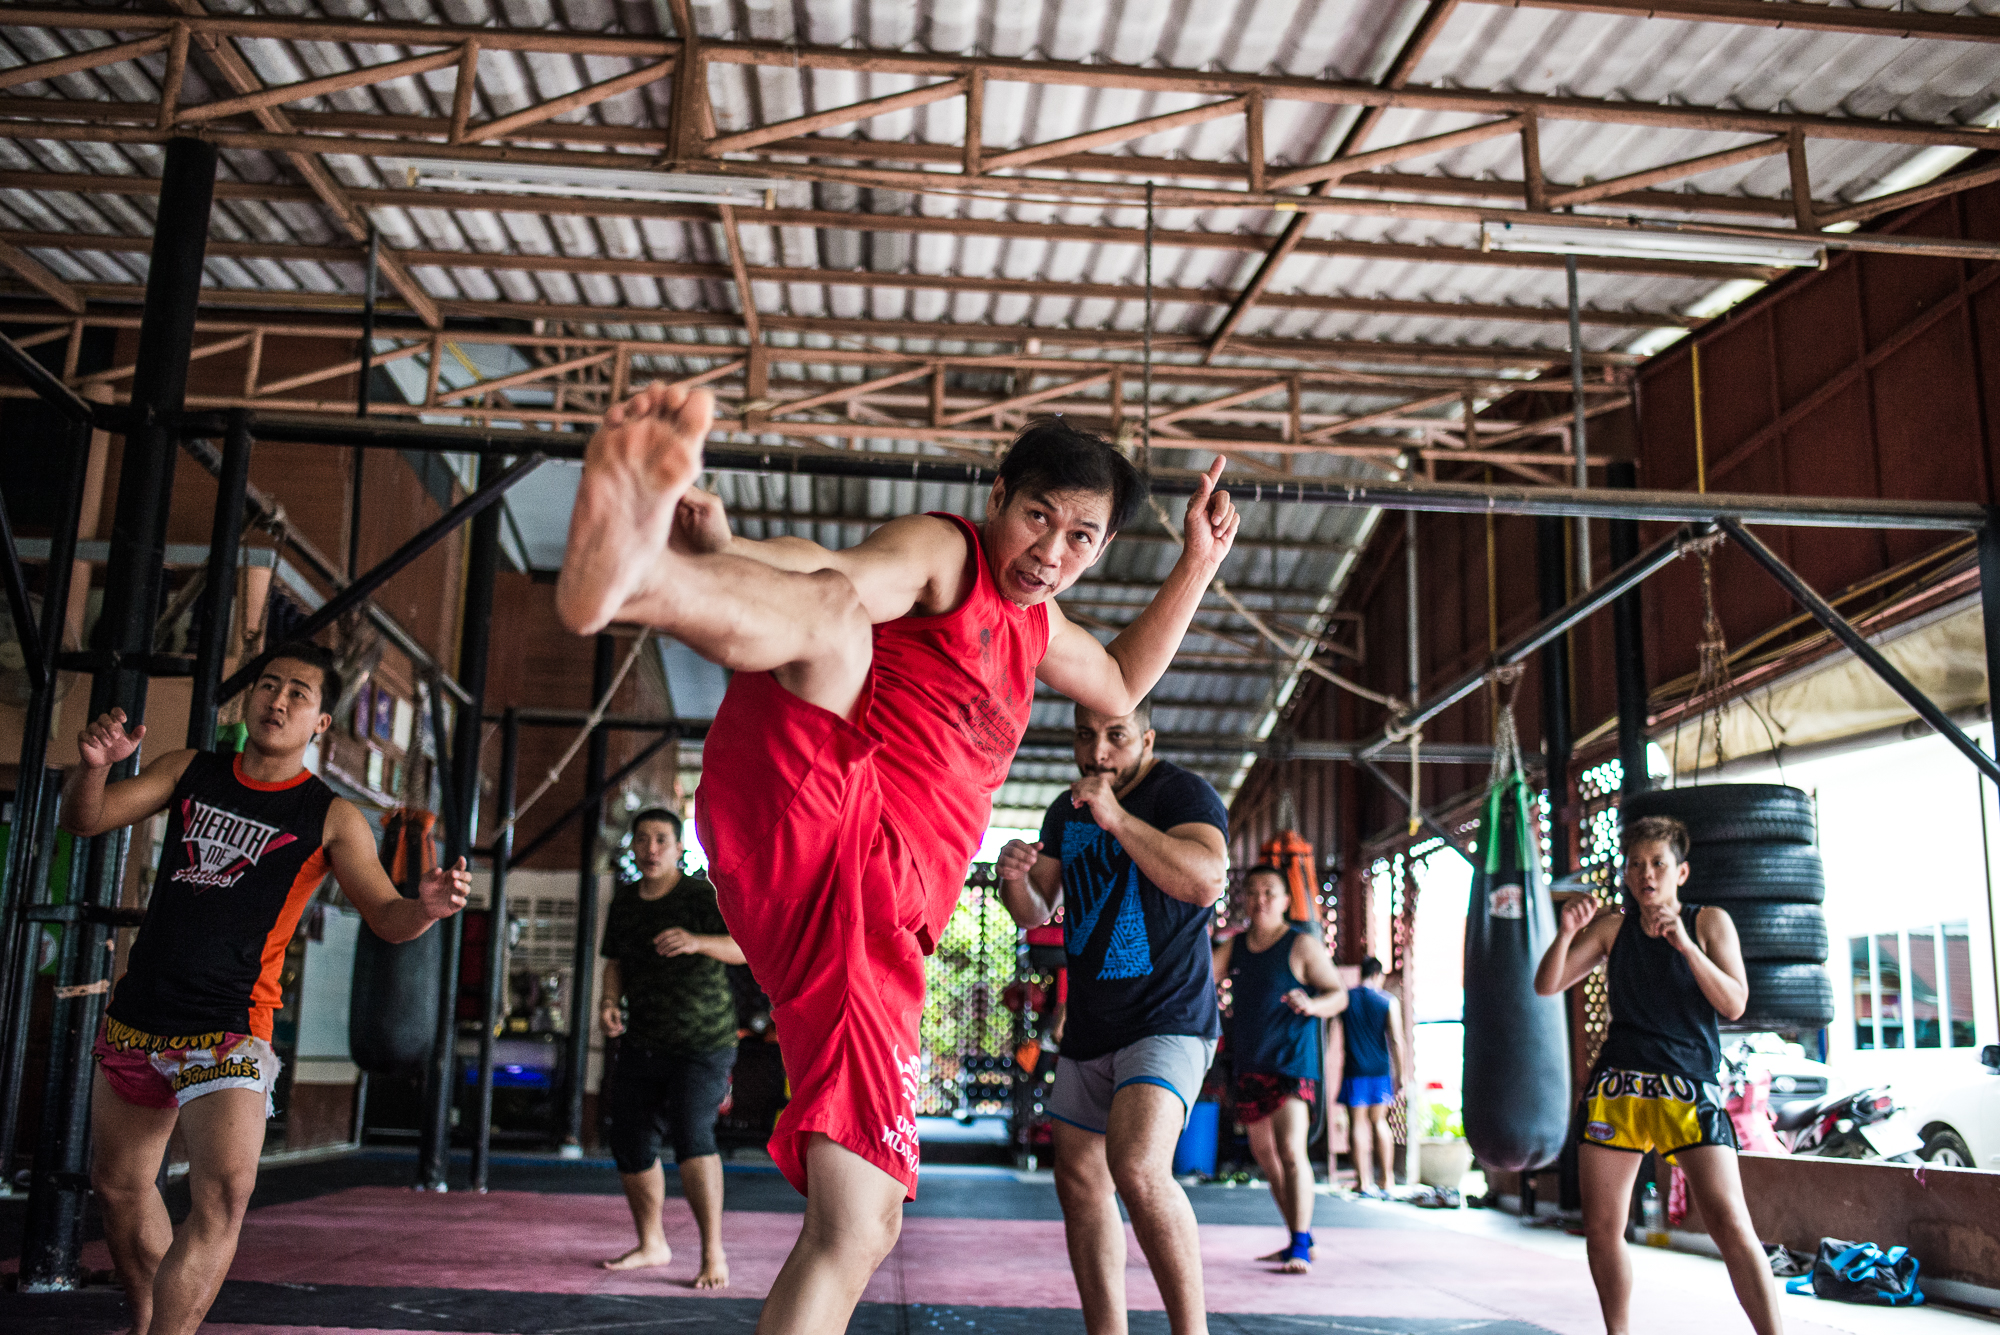 Luktupfah_Camp_Training-225.jpg